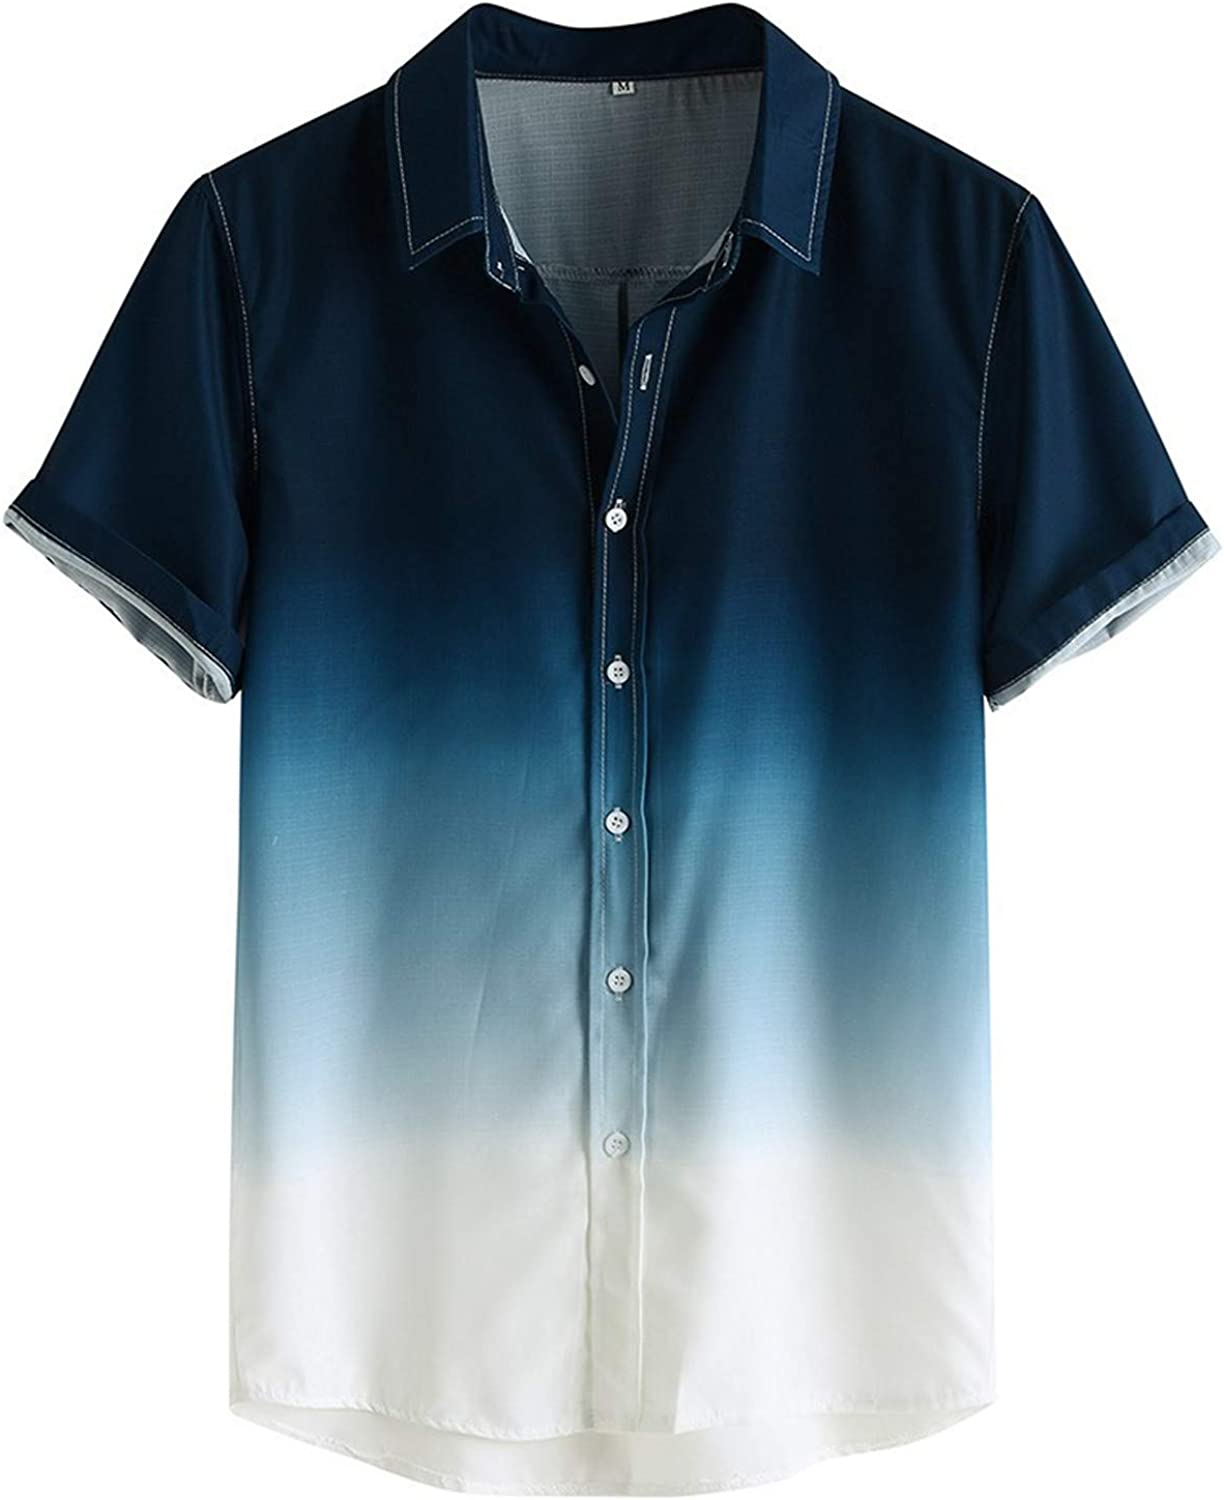 Shirt for Men, F_Gotal Men's T-Shirts Cotton and Linen Summer Short Sleeve Gradient Color Loose Casual Sport Blouse Tops